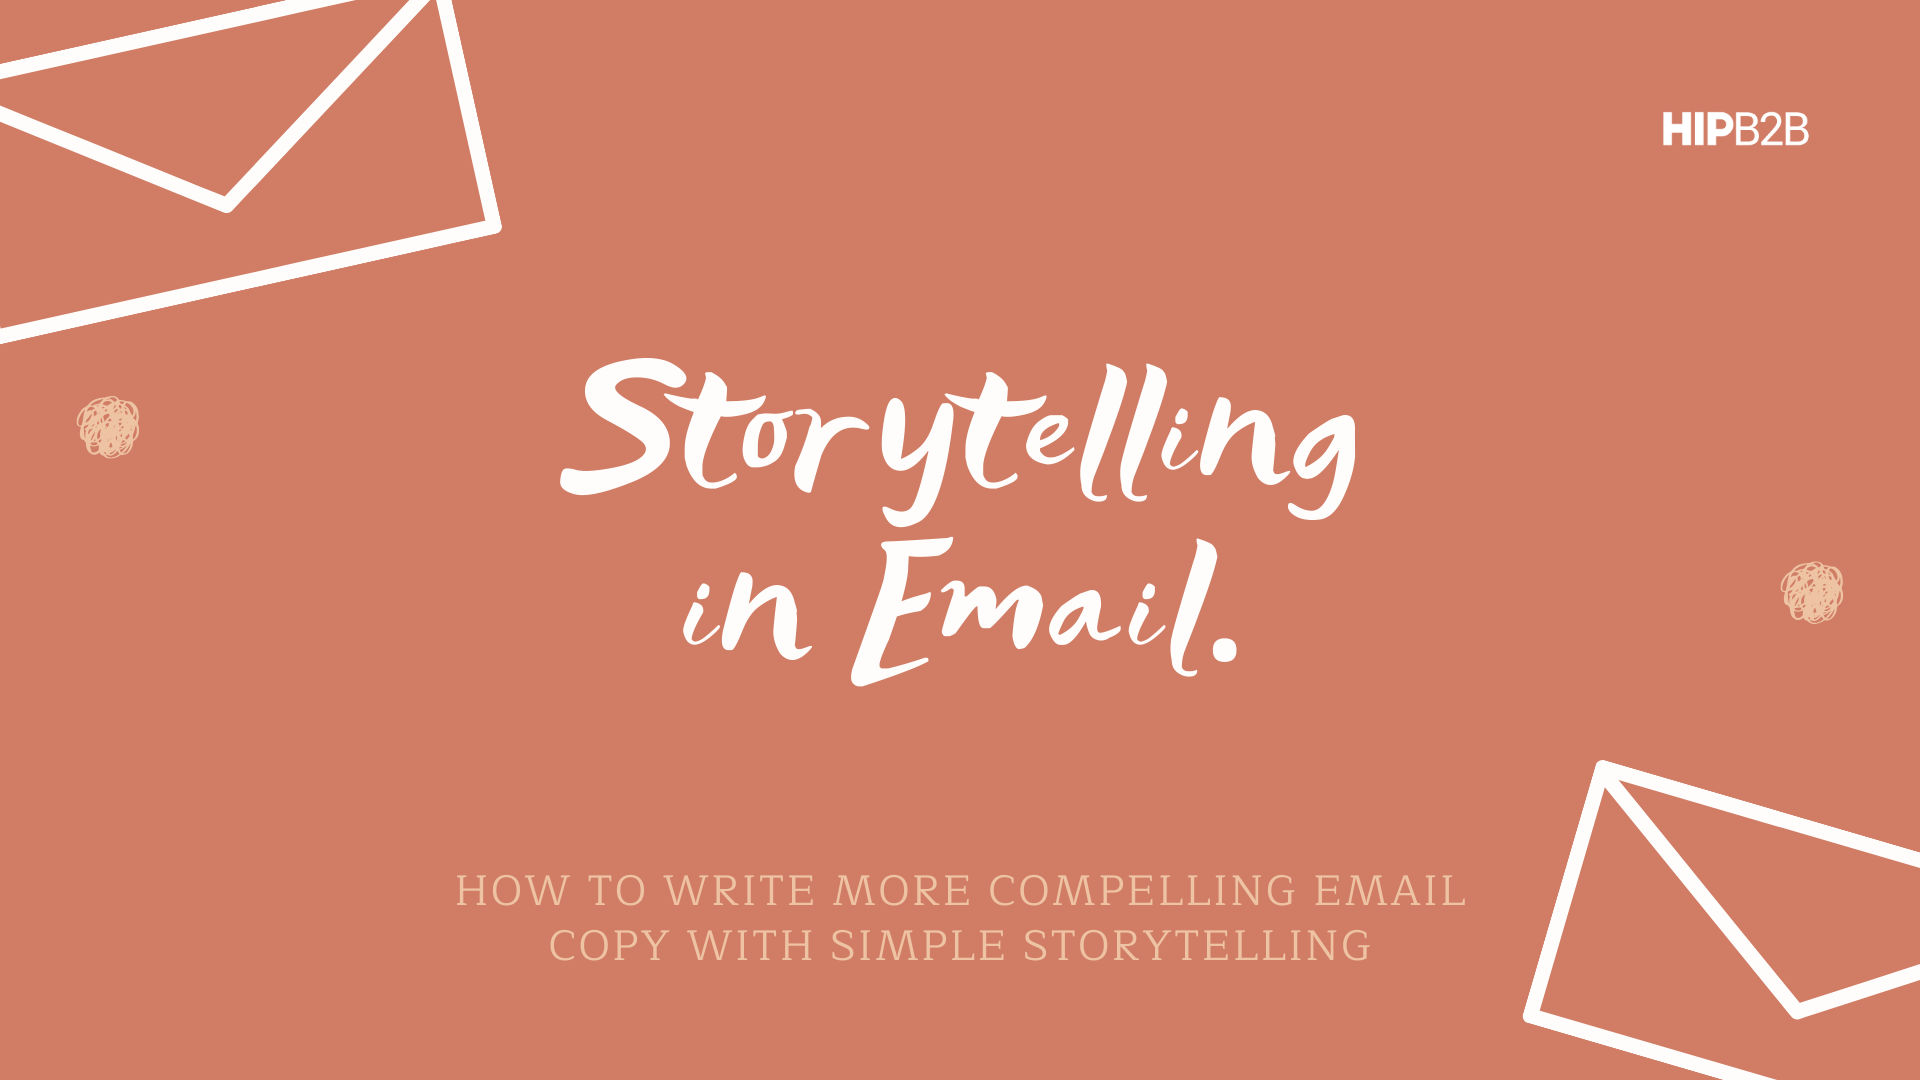 Storytelling in Email